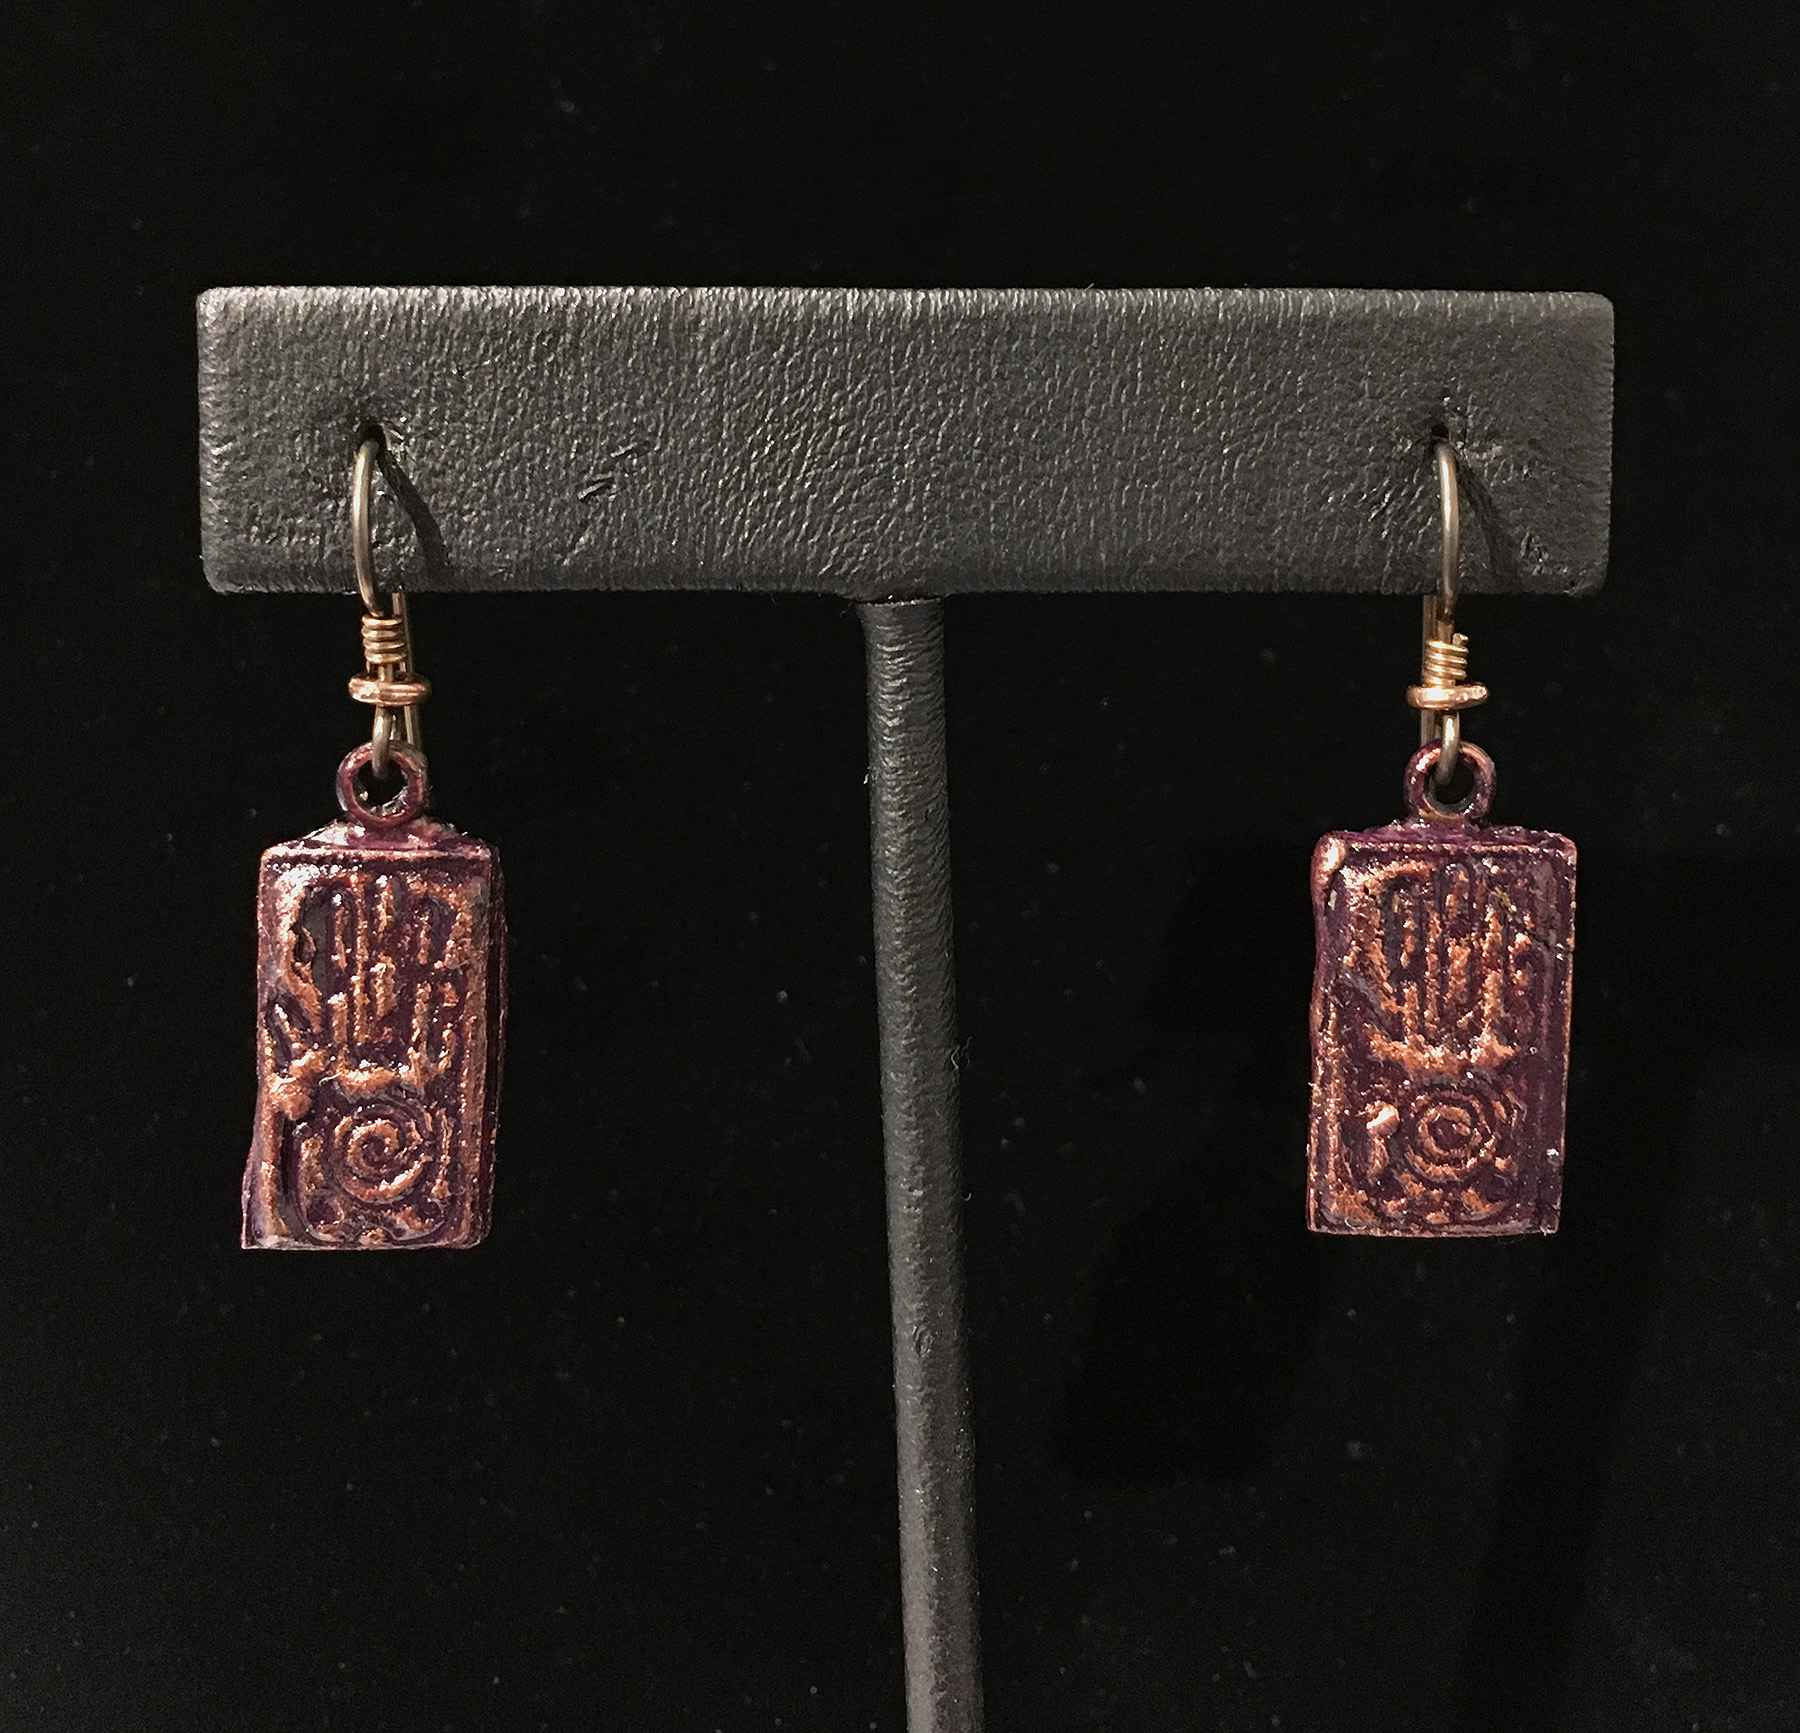 PHC 10 - Hand Earrings represented  by   Artisan Jewelry